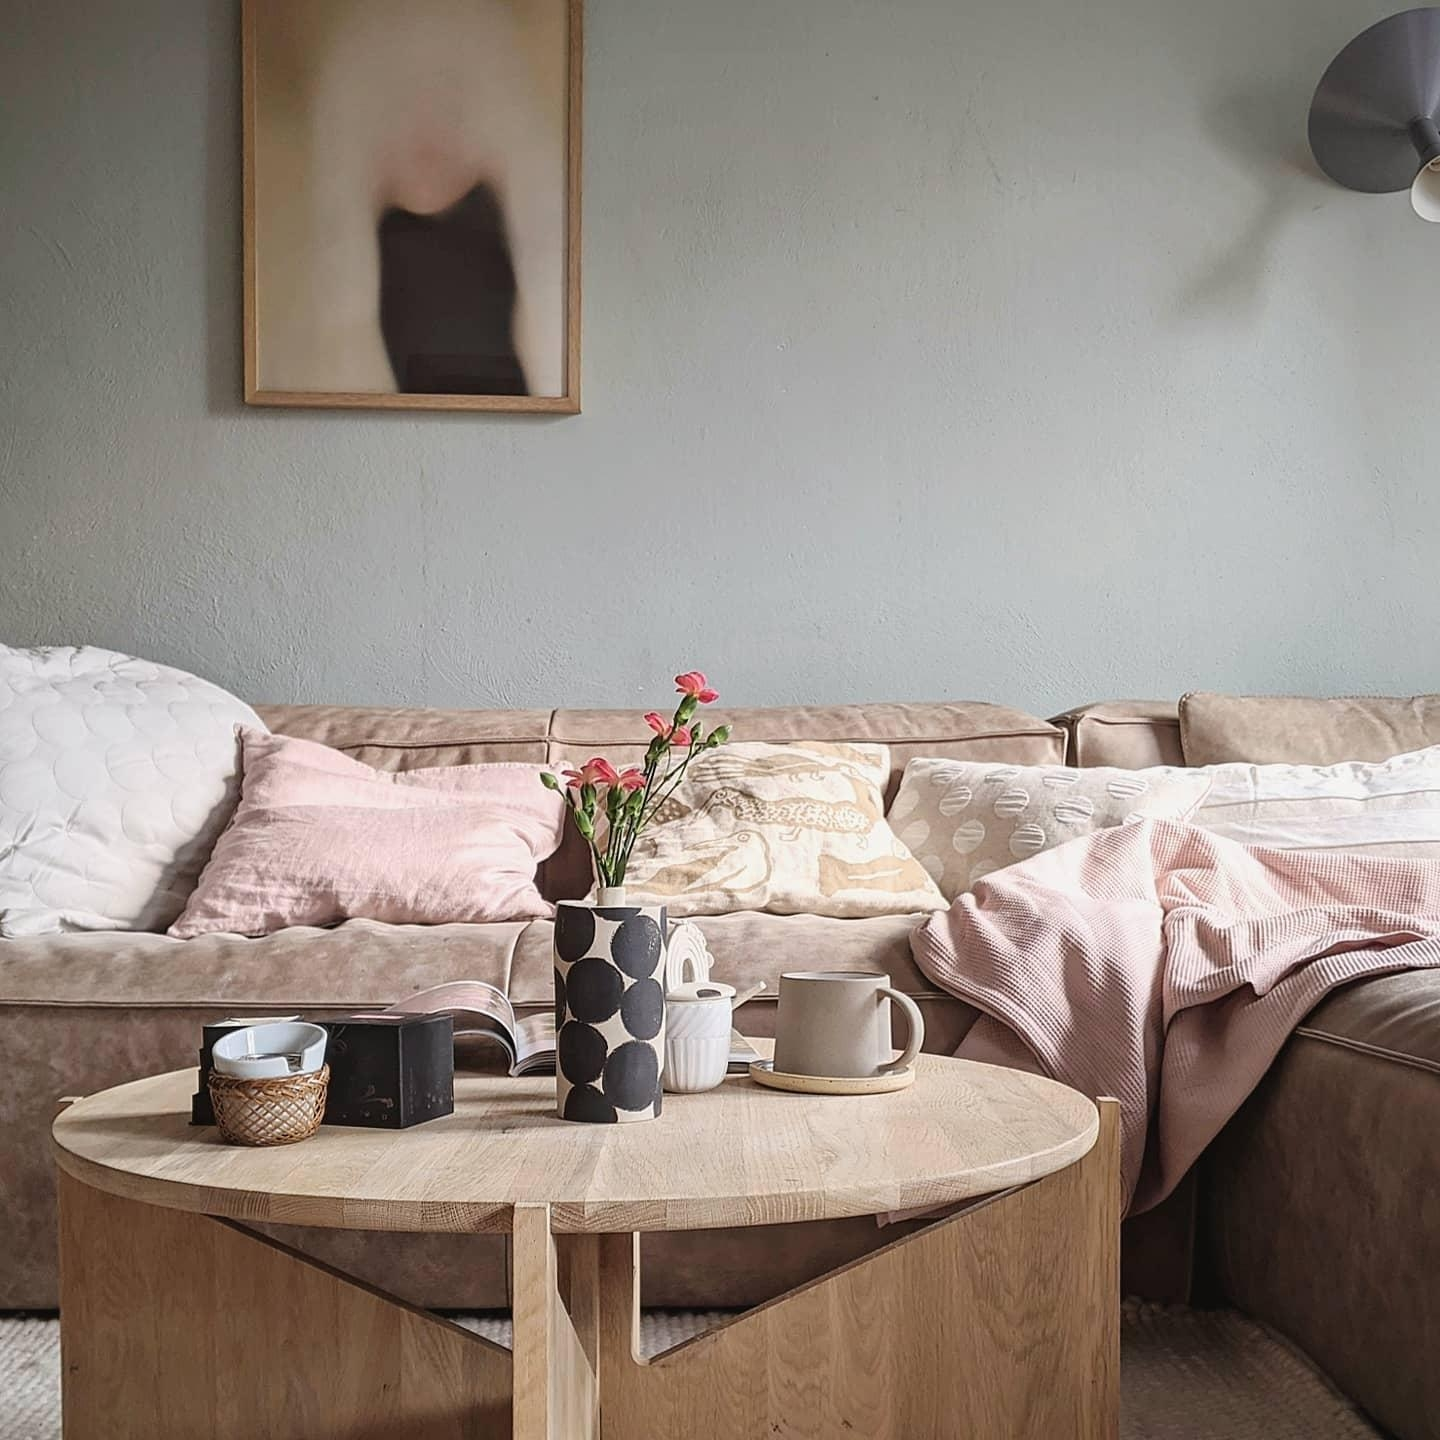 #livingroom #homedecor #interior#decoration#altbau #homestory#hygge#wohnzimmer #couchstyle#scandinavisch#living